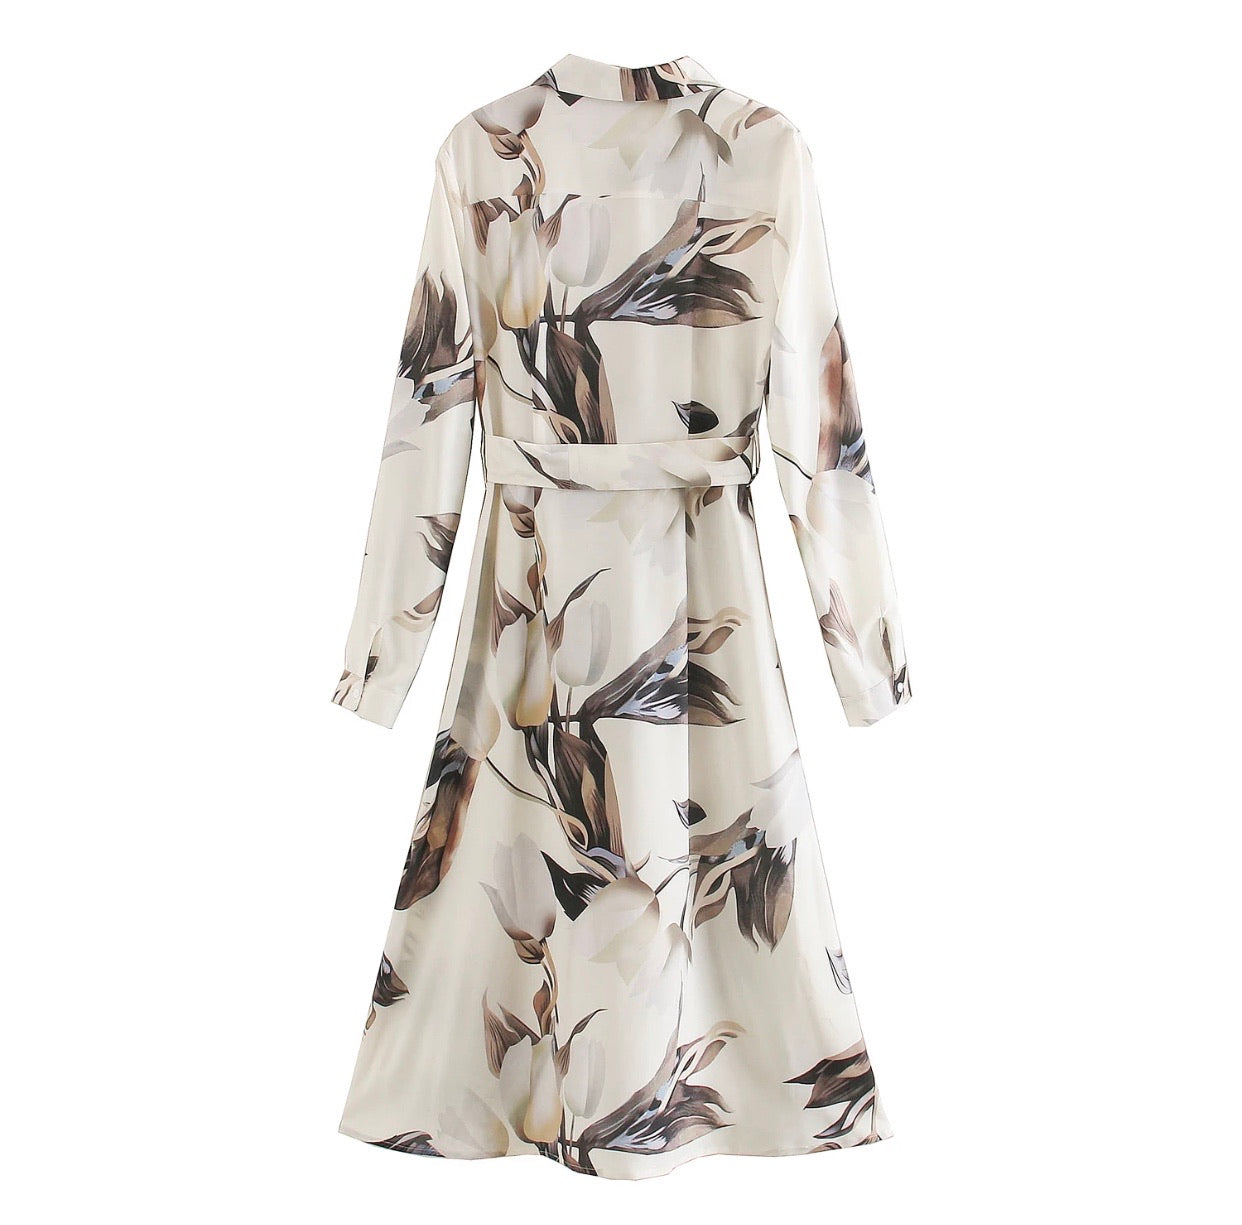 Jasmine floral dress with collar and tie